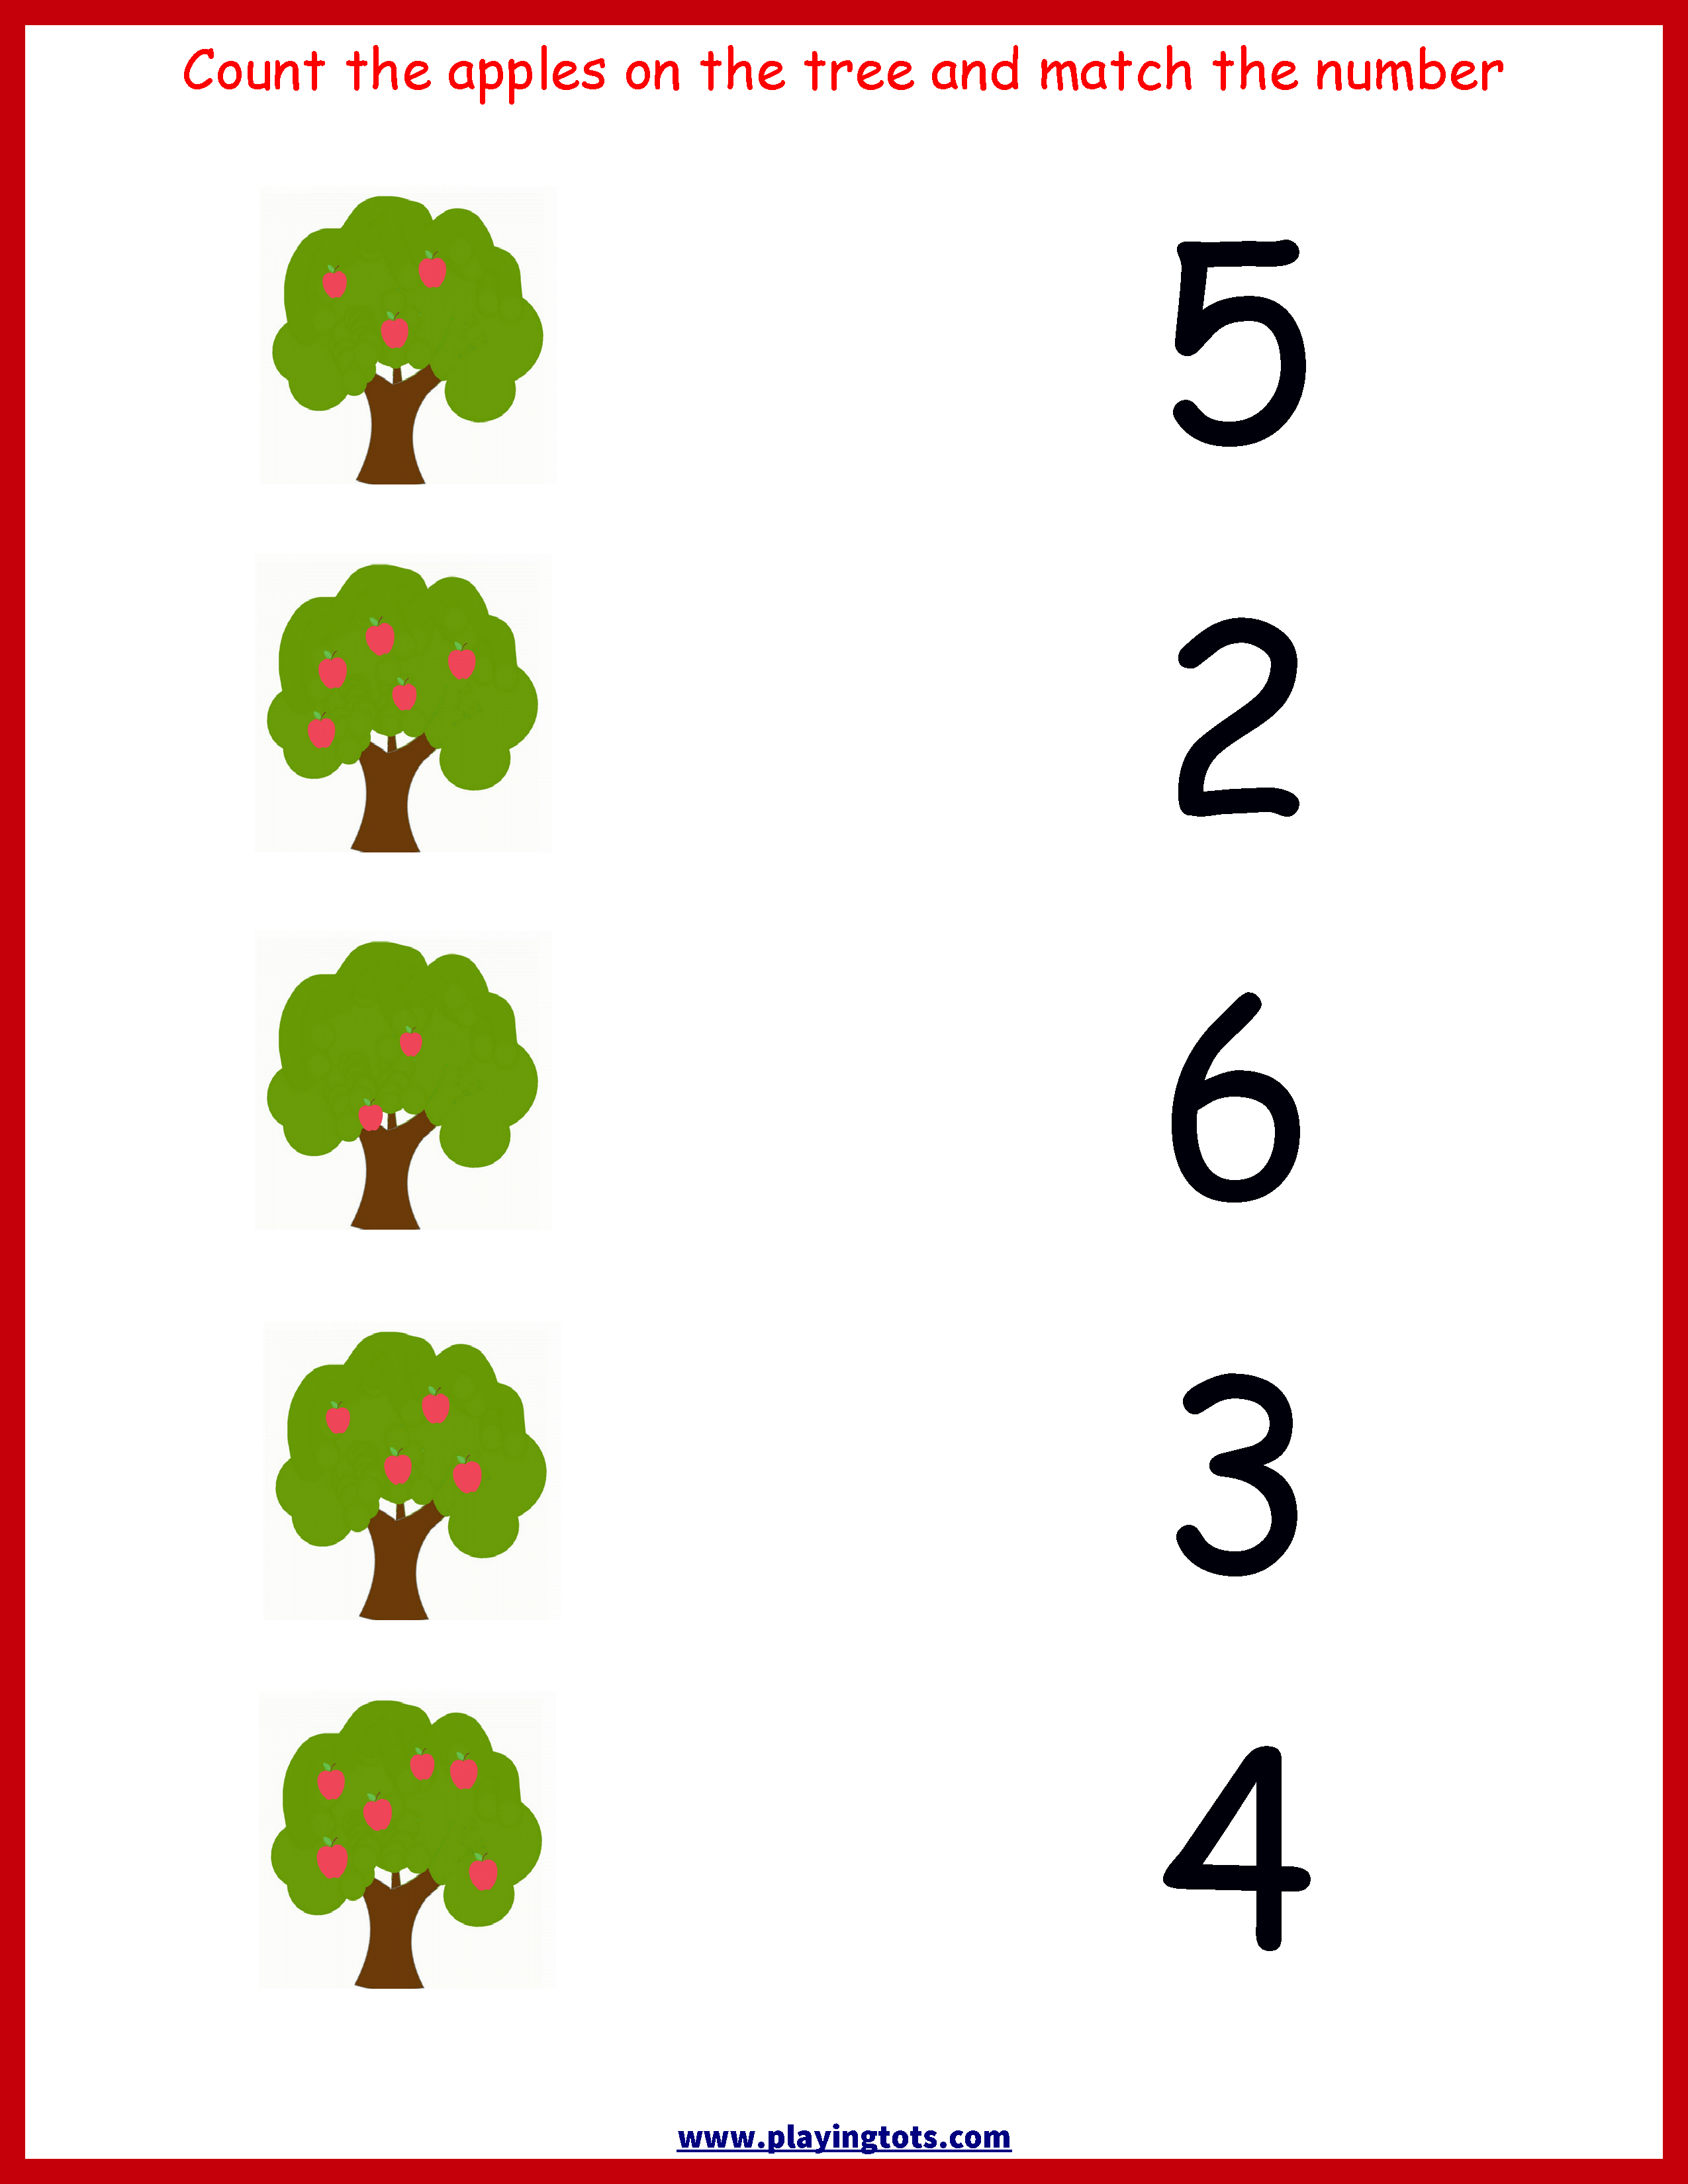 Printable For Toddlers And Preschoolers In